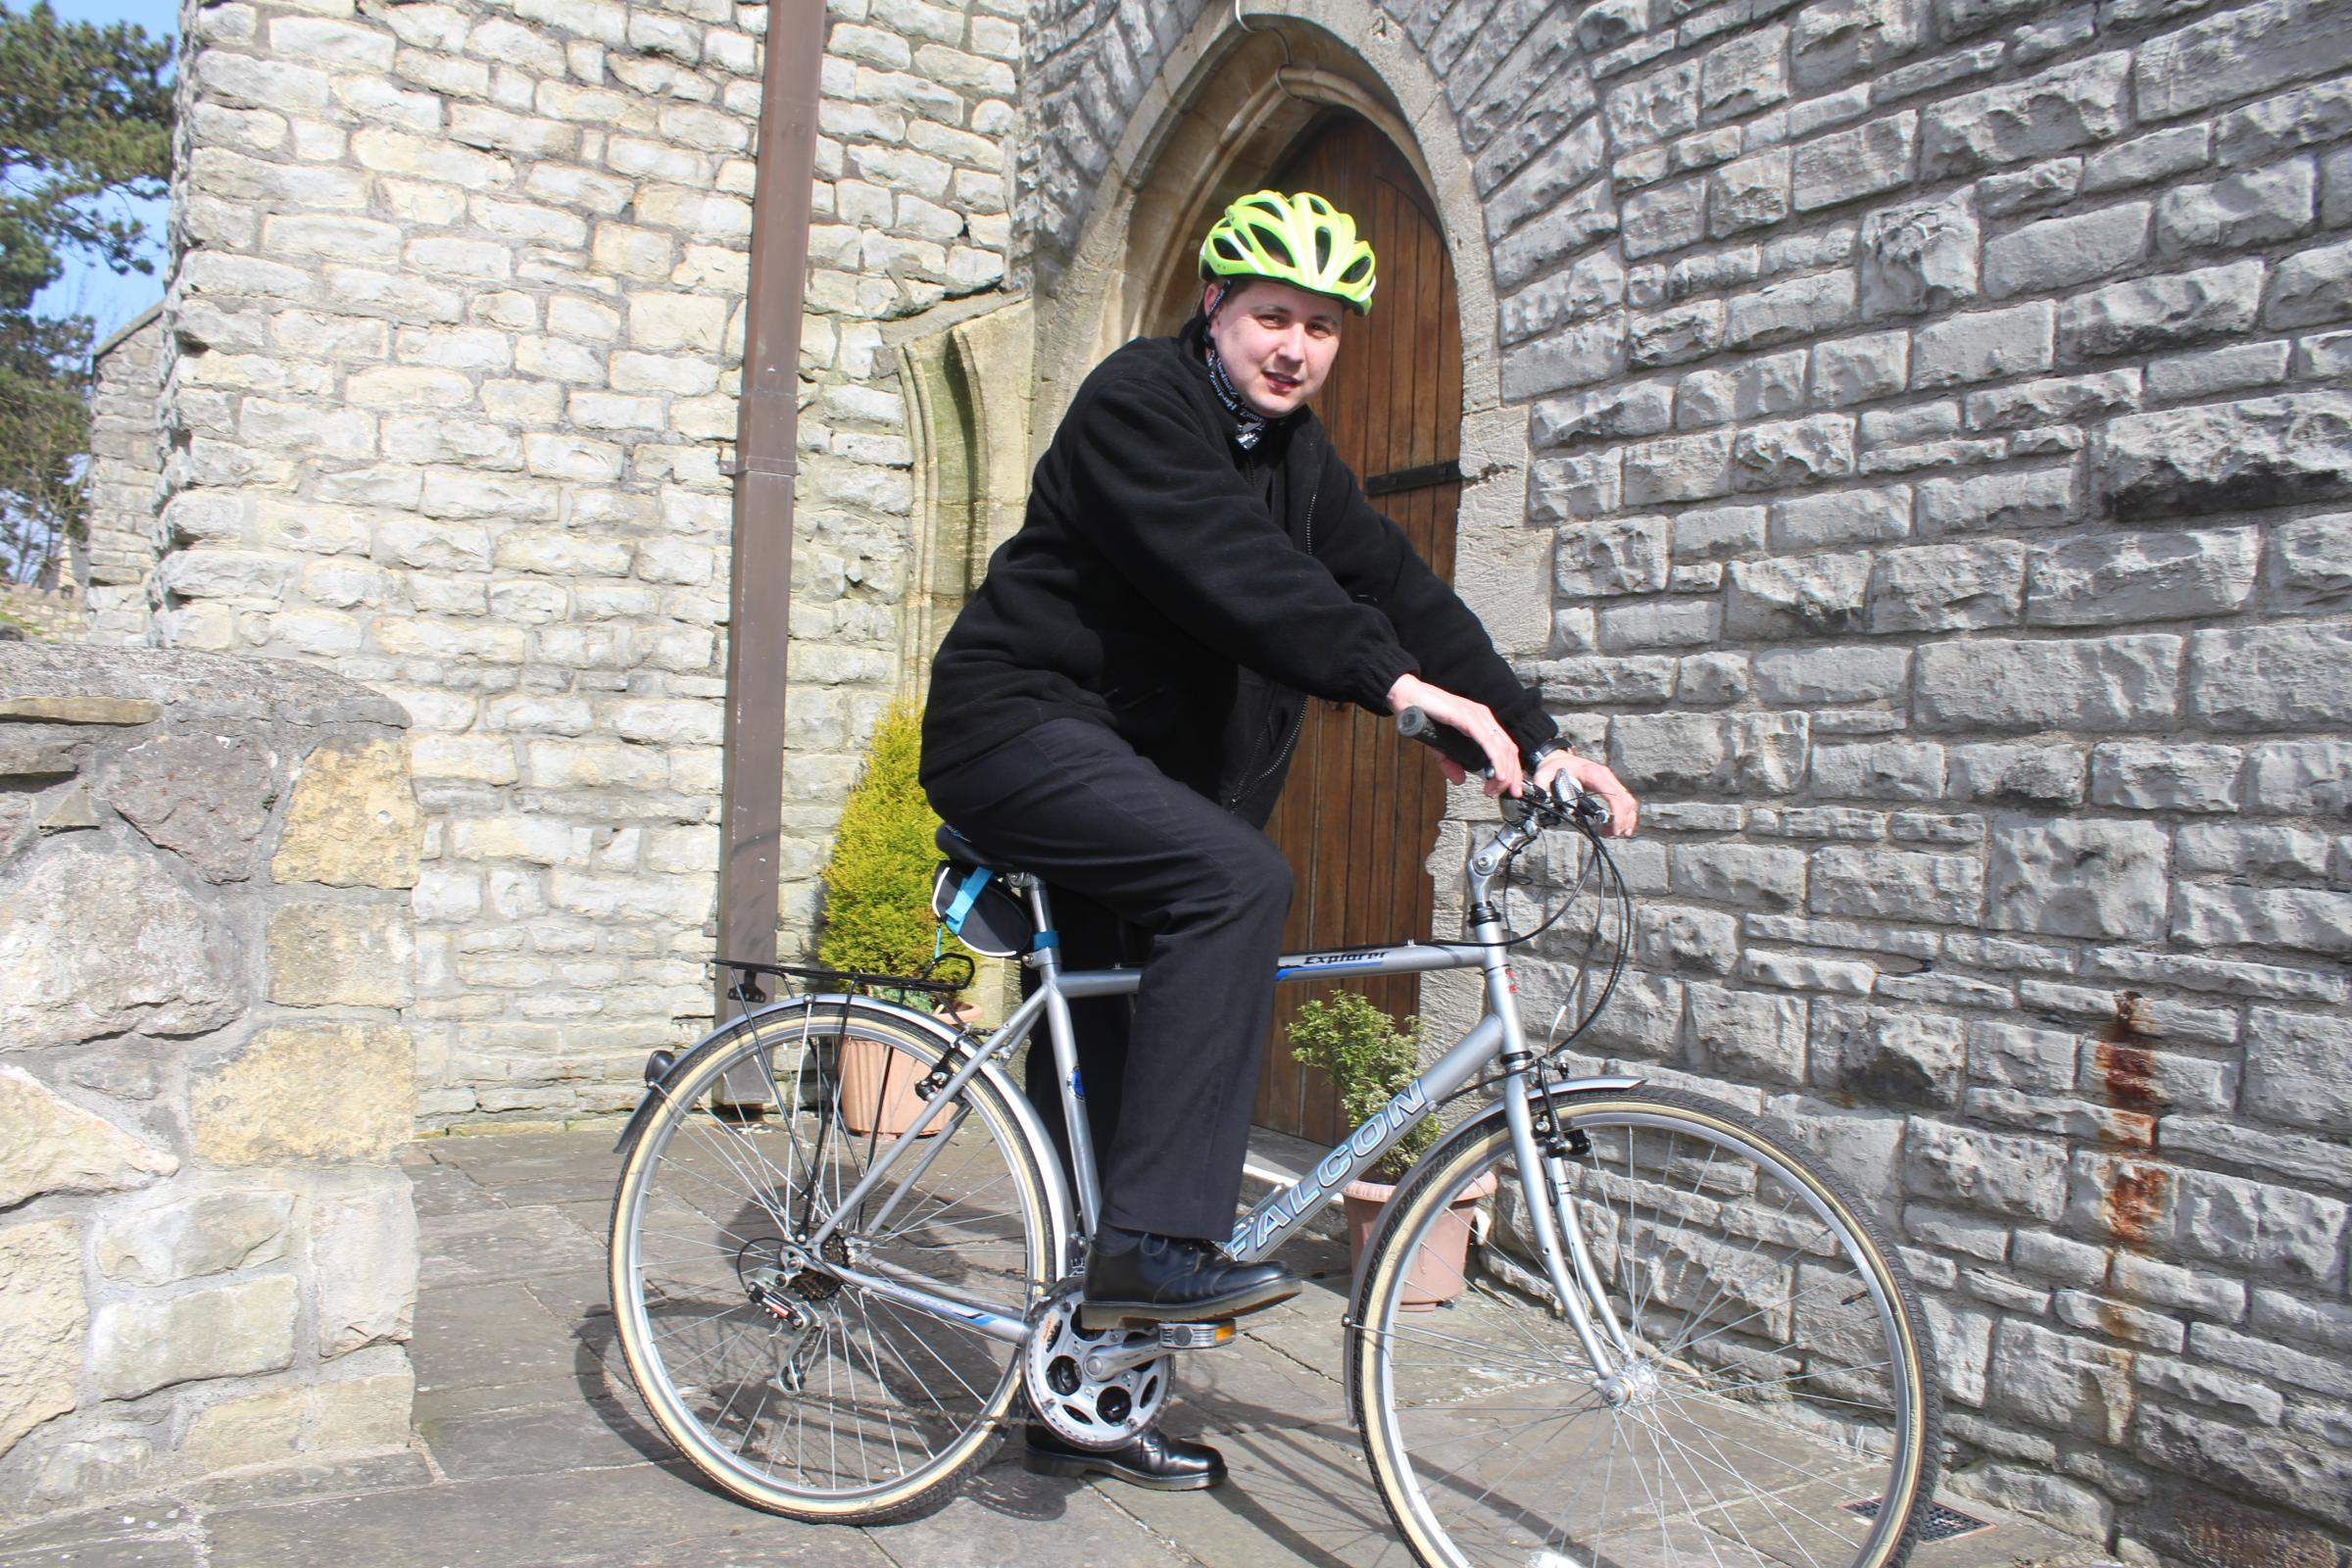 Barry clergyman gets on his bike for an Easter challenge